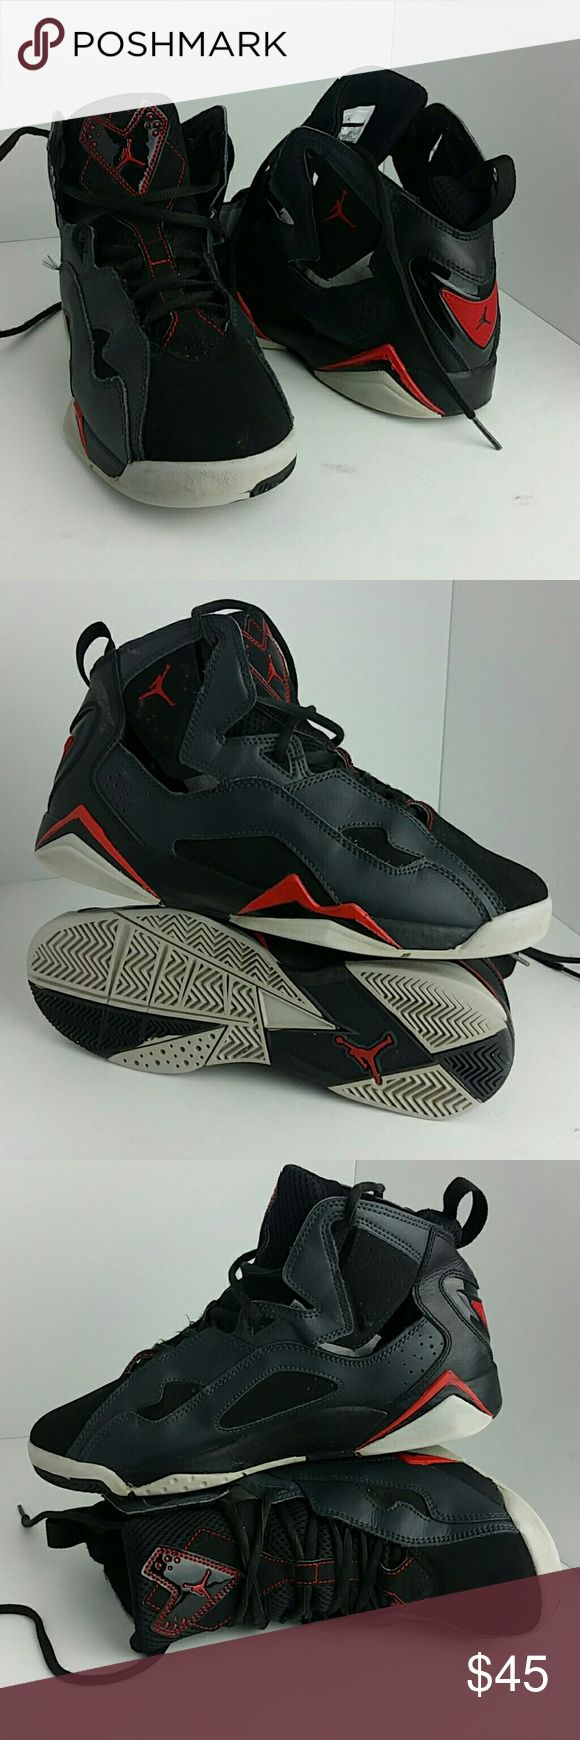 AIR JORDAN TRUE FLIGHT WOMEN/YOUTH SHOES VERY CLEAN INSIDE-OUT   THIS IS A YOUTH SIZE 7Y WHICH IS WOMEN SIZE 8.5  SKE # KU Air Jordan Shoes Athletic Shoes